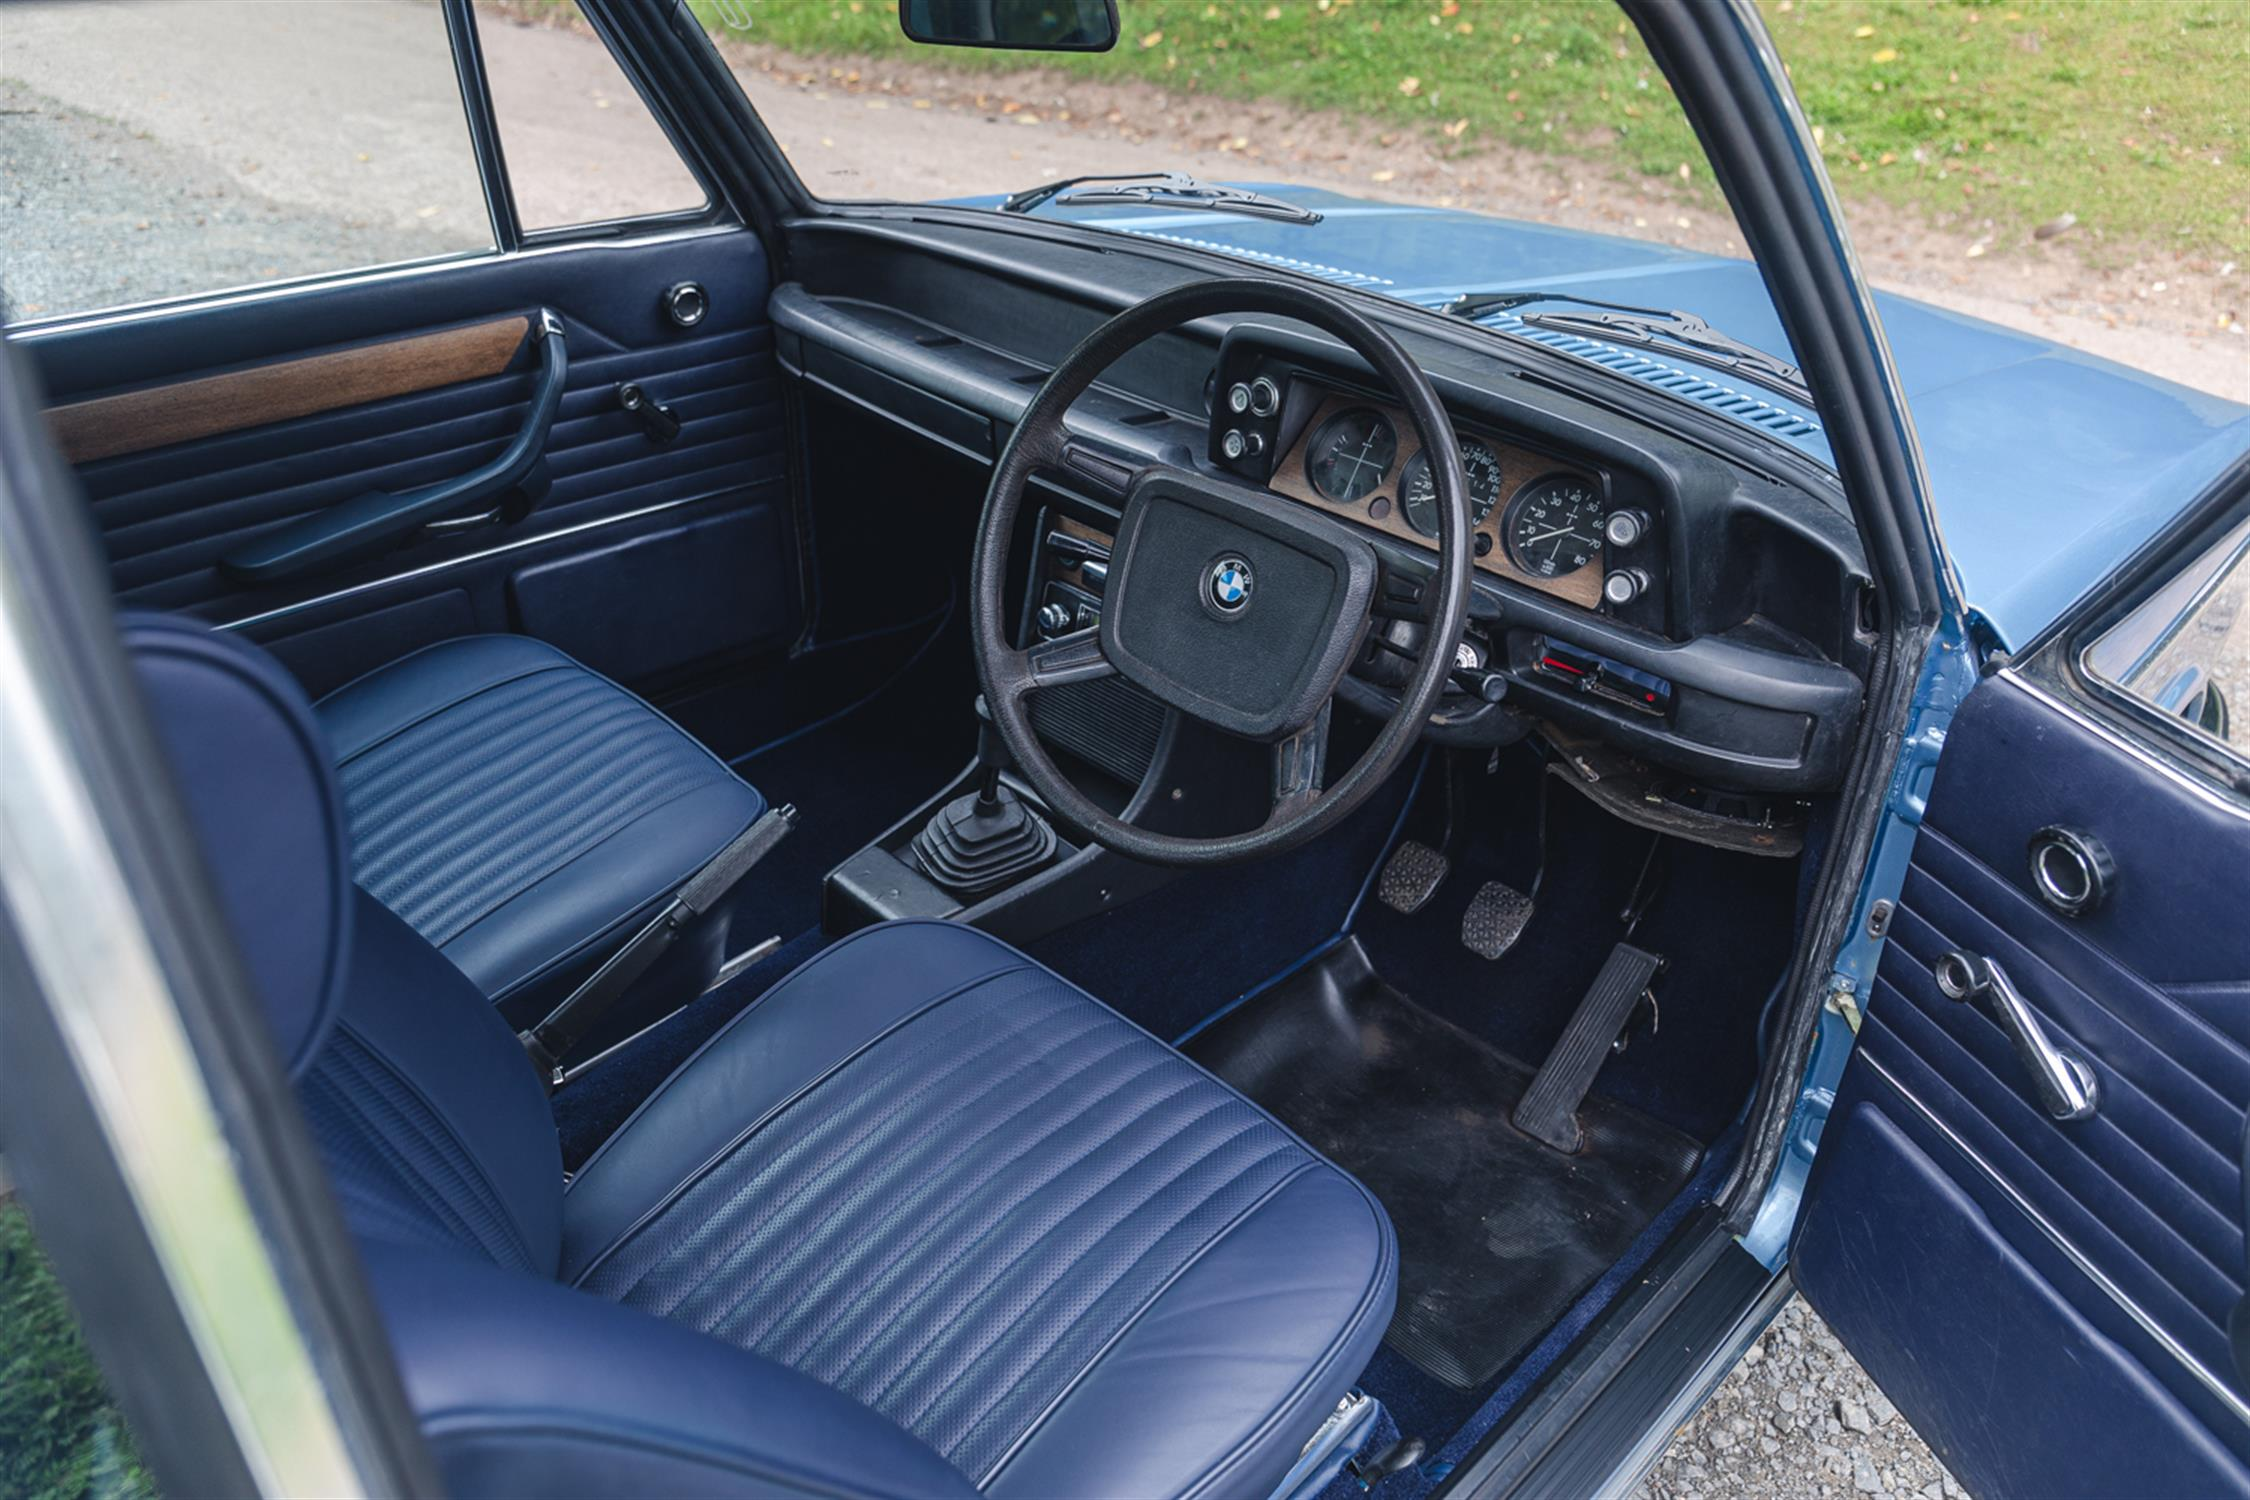 1975 BMW 2002 Tii - Image 2 of 10